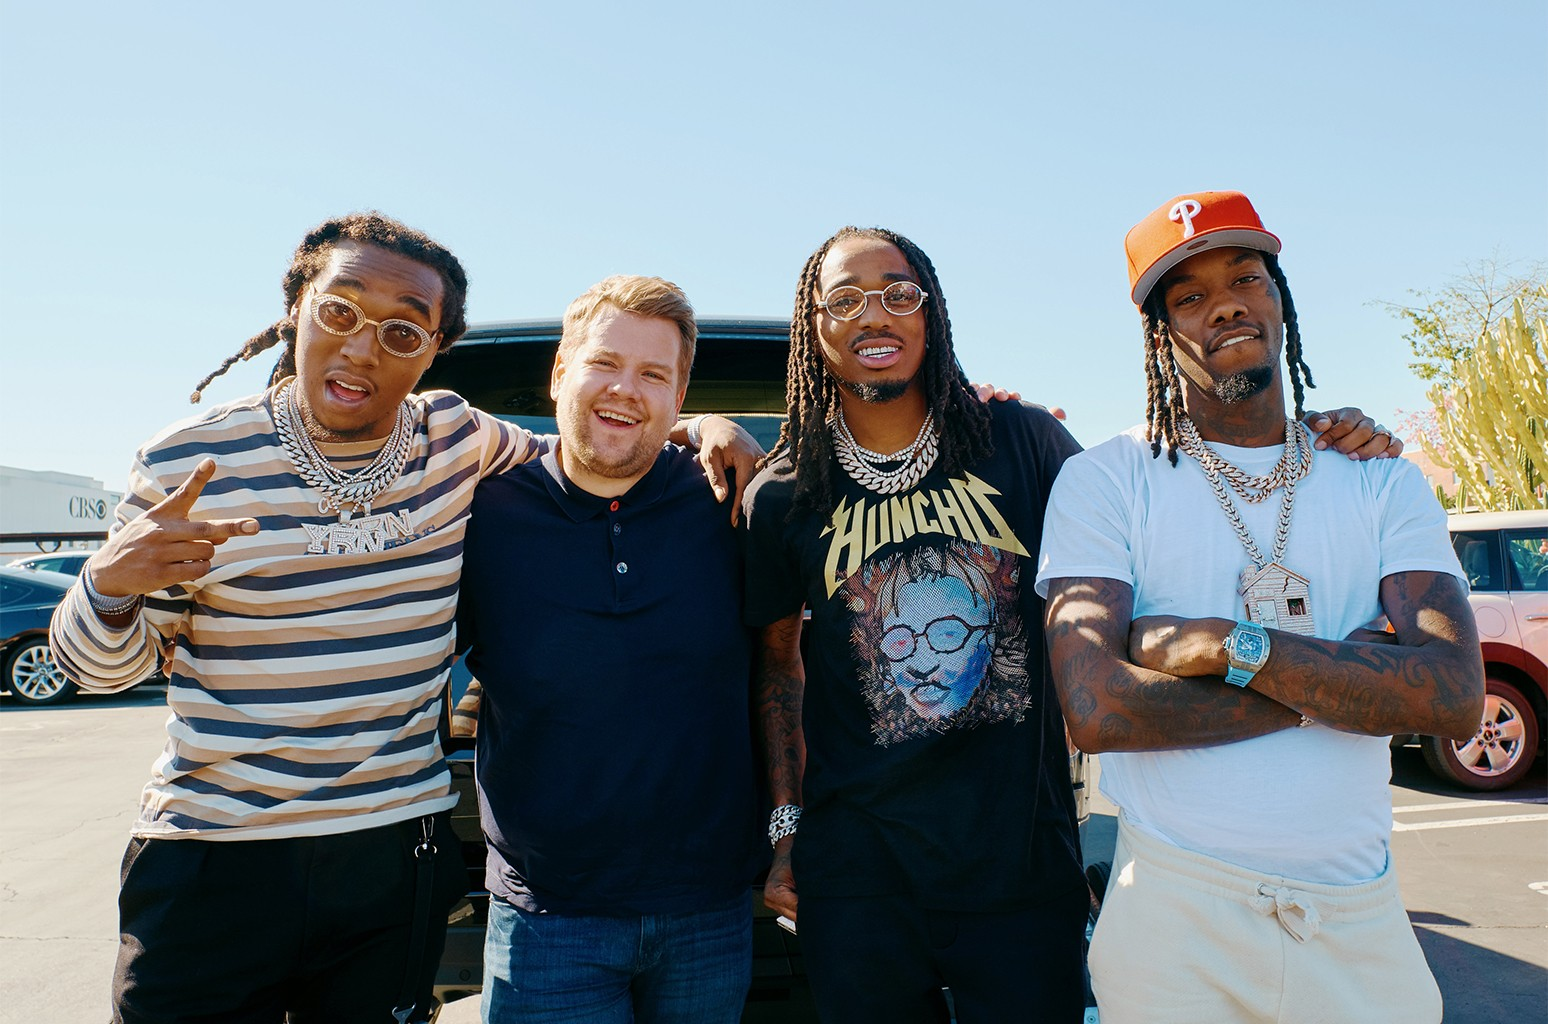 Carpool Karaoke with Migos on The Late Late Show with James Corden.